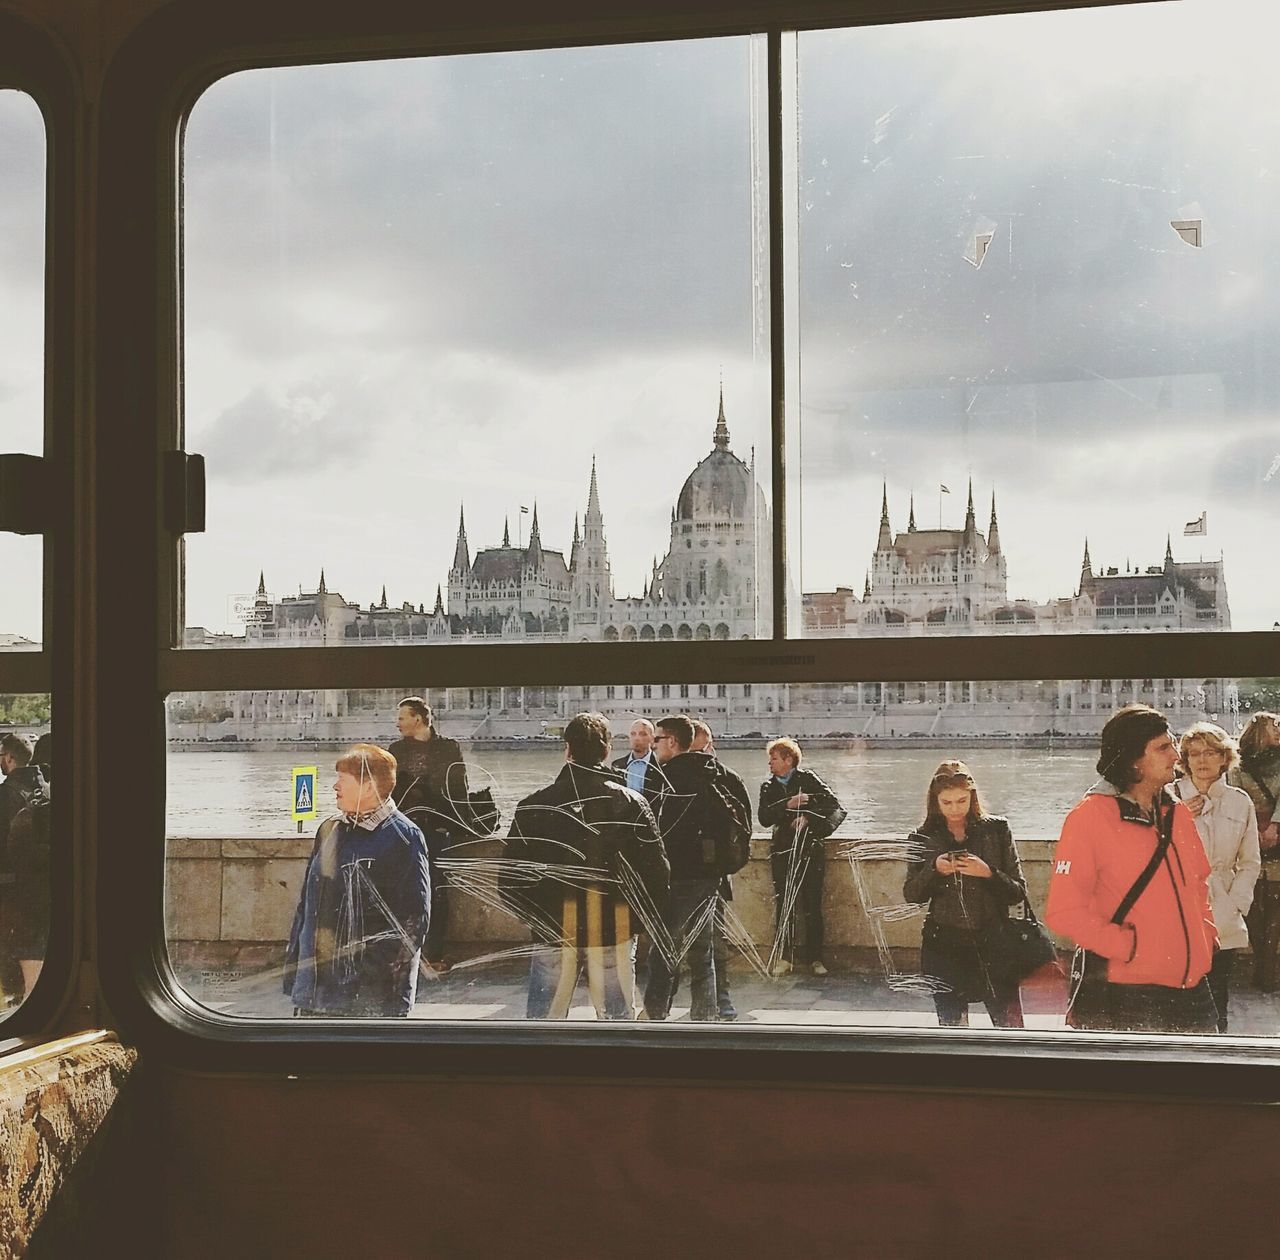 architecture, built structure, building exterior, travel destinations, travel, water, transportation, real people, tourism, city, sky, window, men, mode of transport, cloud - sky, river, day, communication, dome, land vehicle, lifestyles, women, indoors, cityscape, chain bridge, people